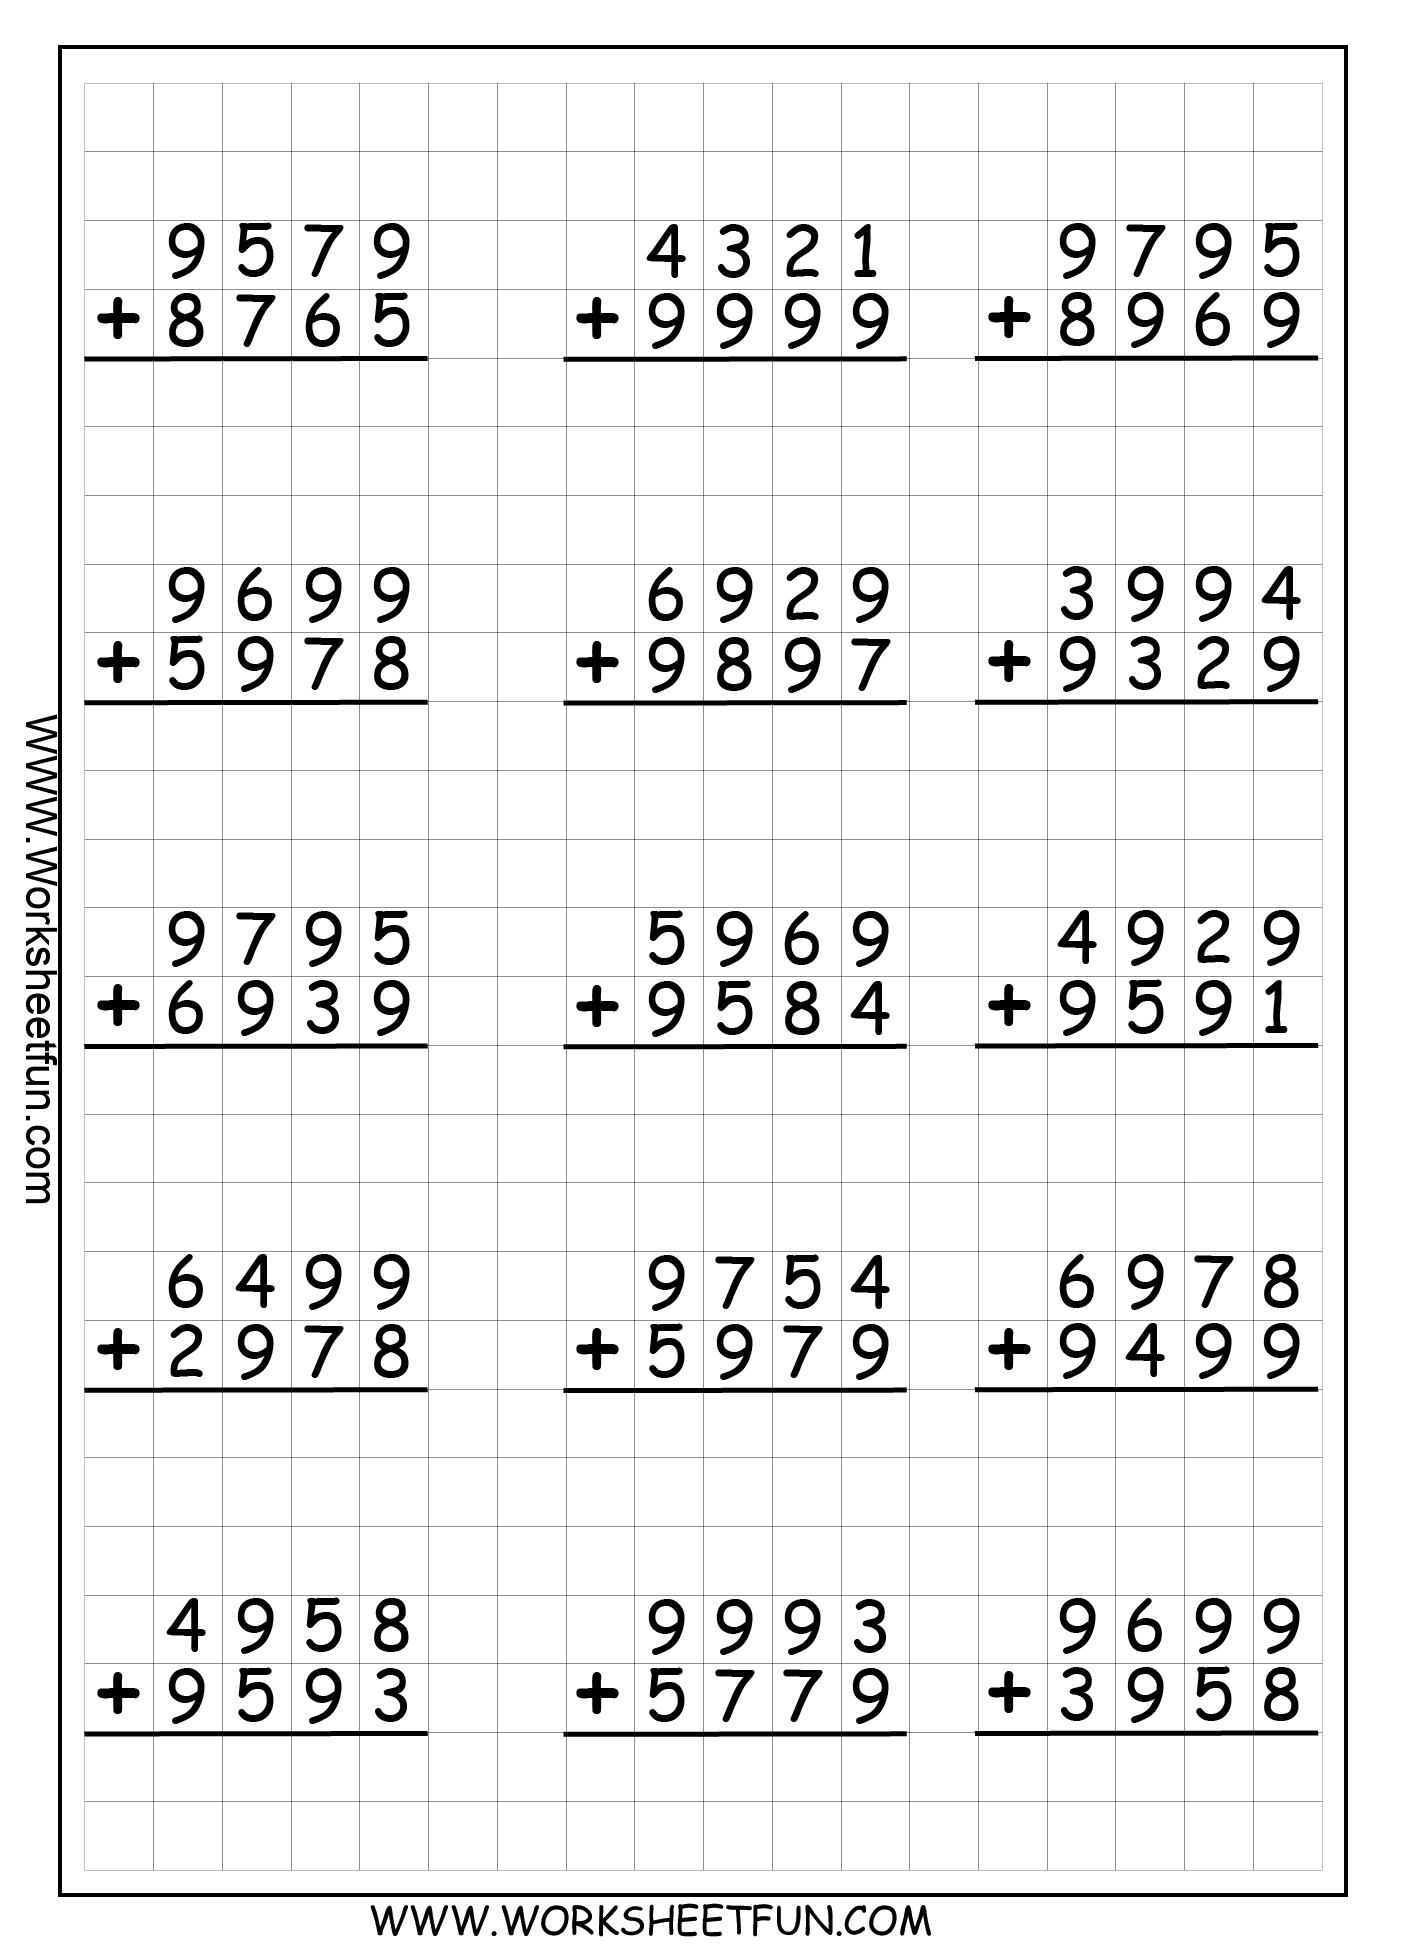 worksheet Multi Digit Addition And Subtraction Worksheets addition with regrouping 9 worksheets printable 4 digit carrying free worksheets